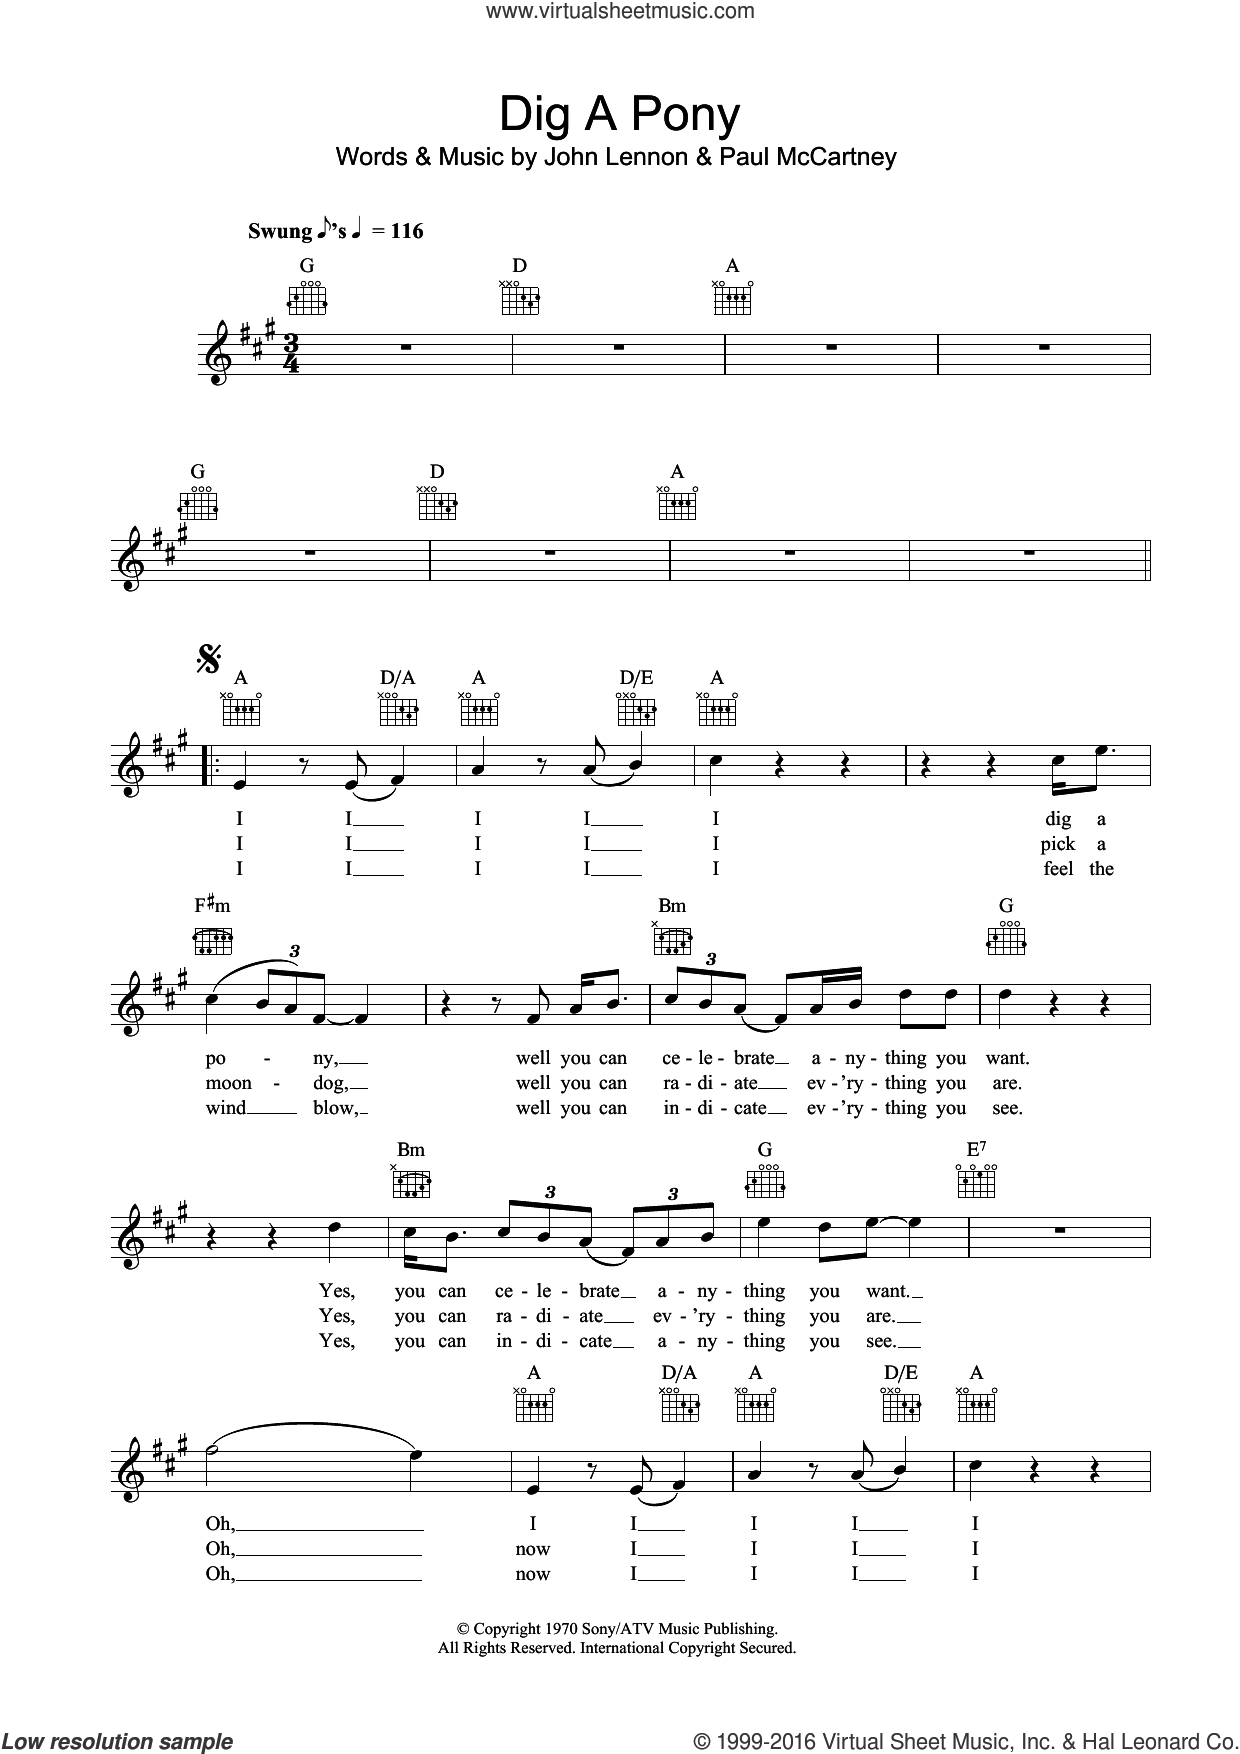 Dig A Pony sheet music for voice and other instruments (fake book) by The Beatles, John Lennon and Paul McCartney, intermediate